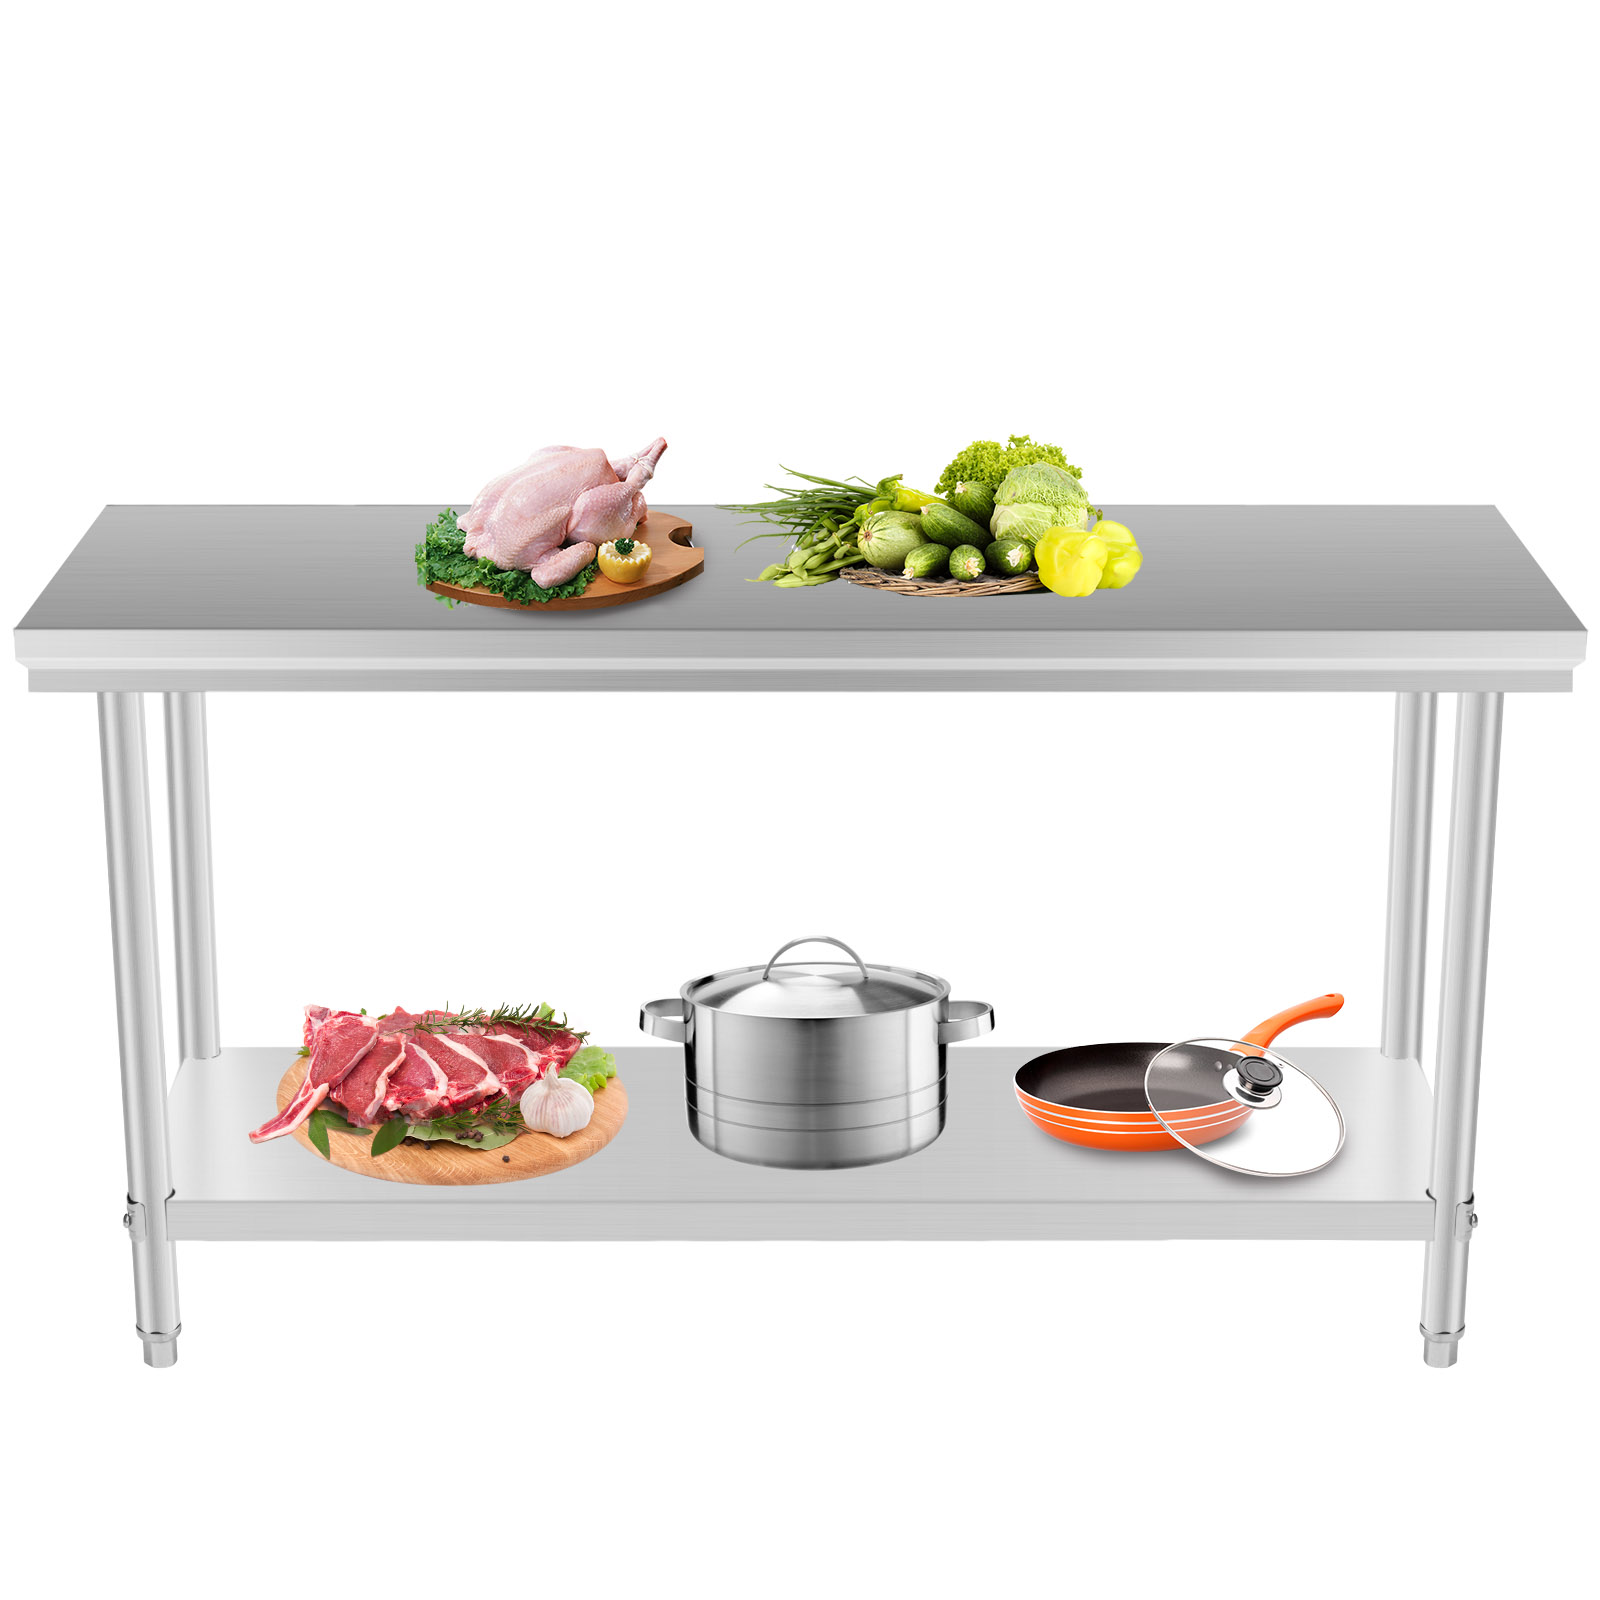 Industrial Kitchen: Commercial Kitchen Stainless Steel Food Work Prep Table